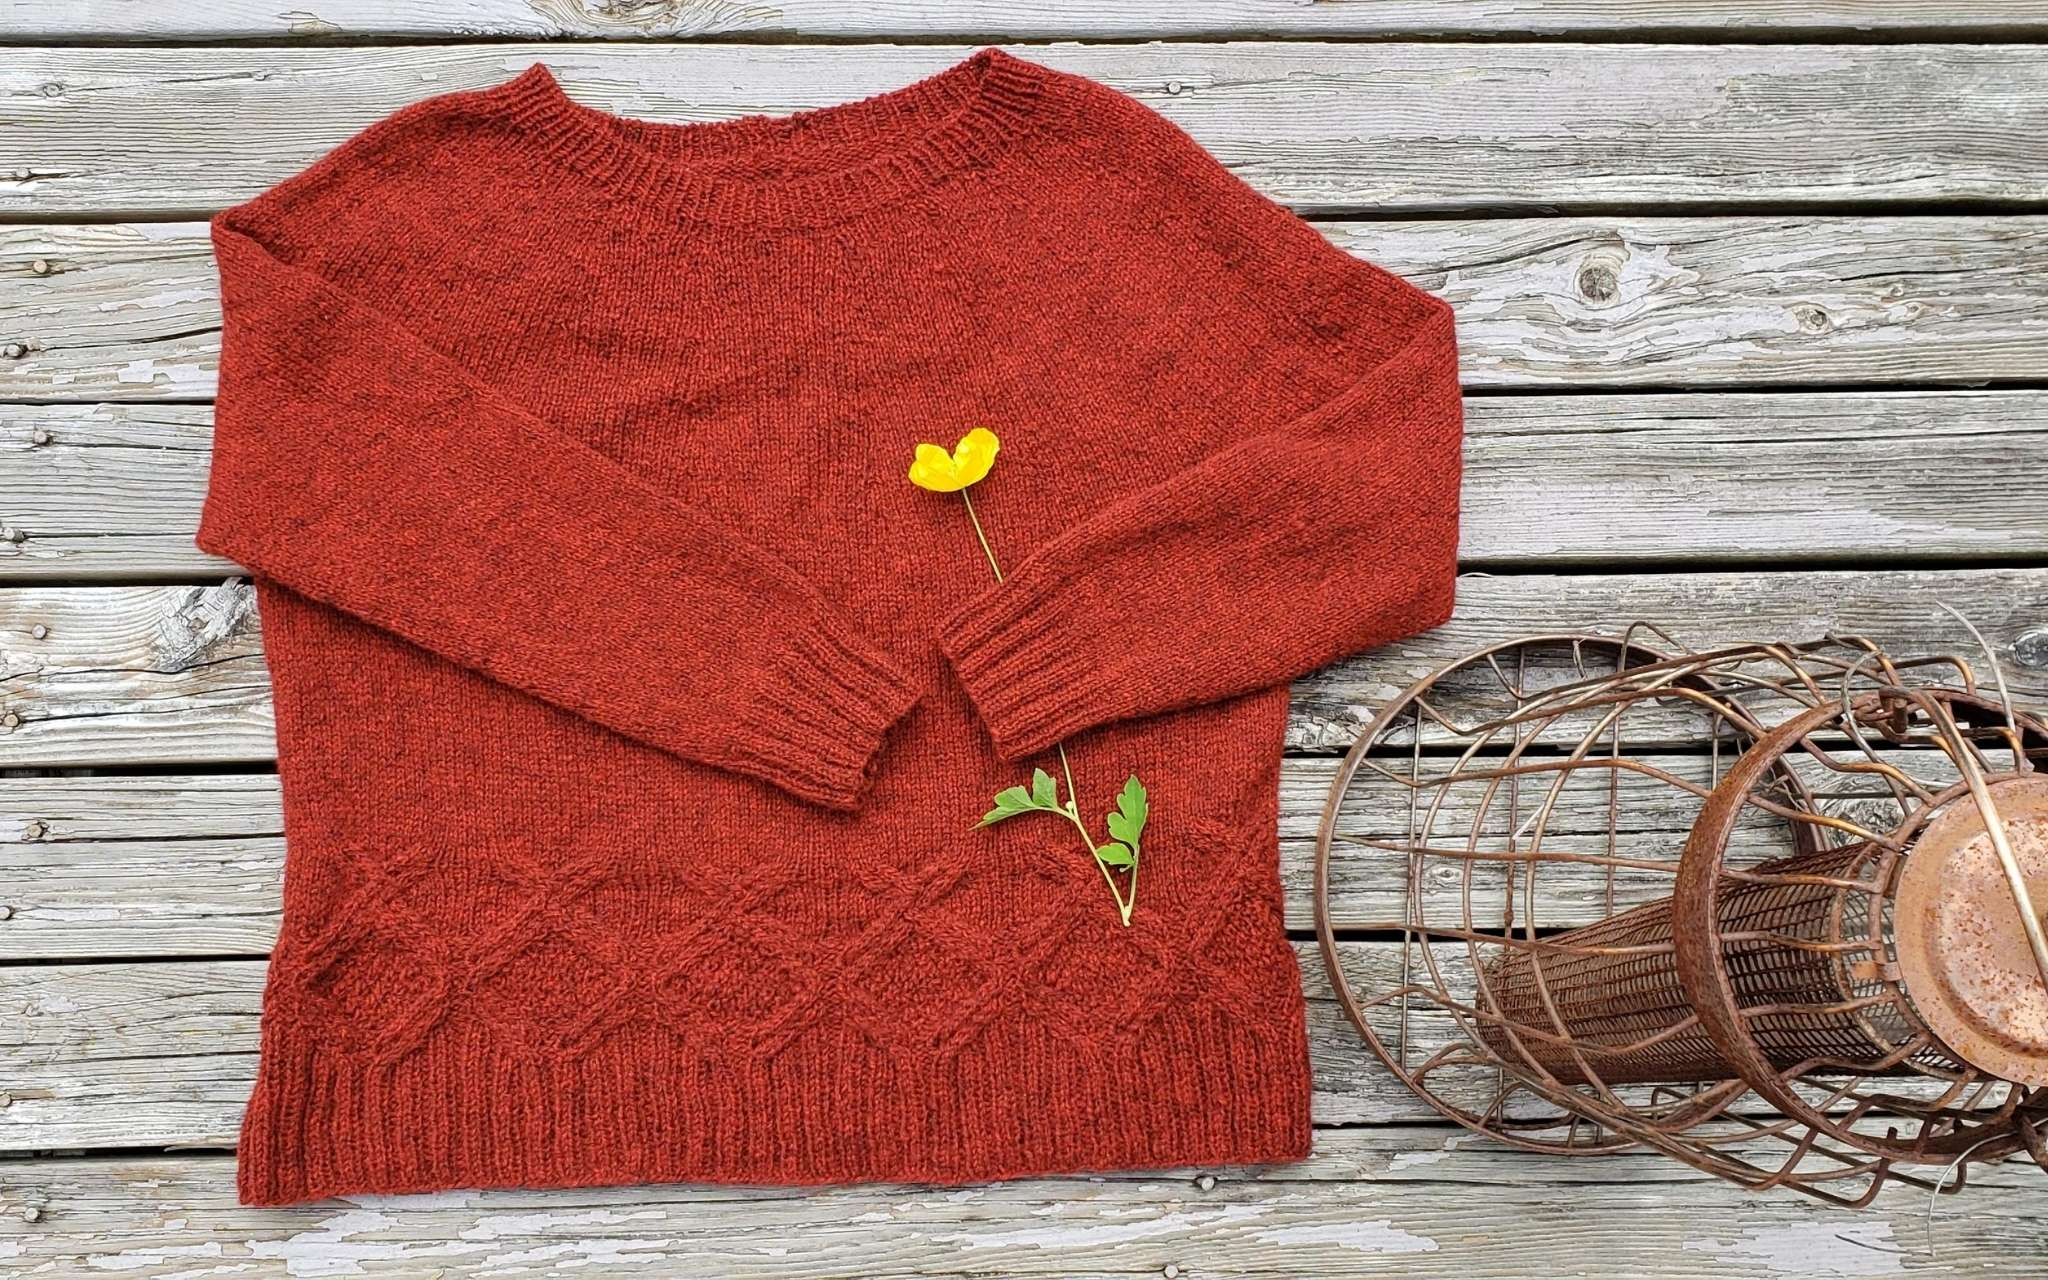 rich orange sweater with cabled hem, laying flat with a yellow flower